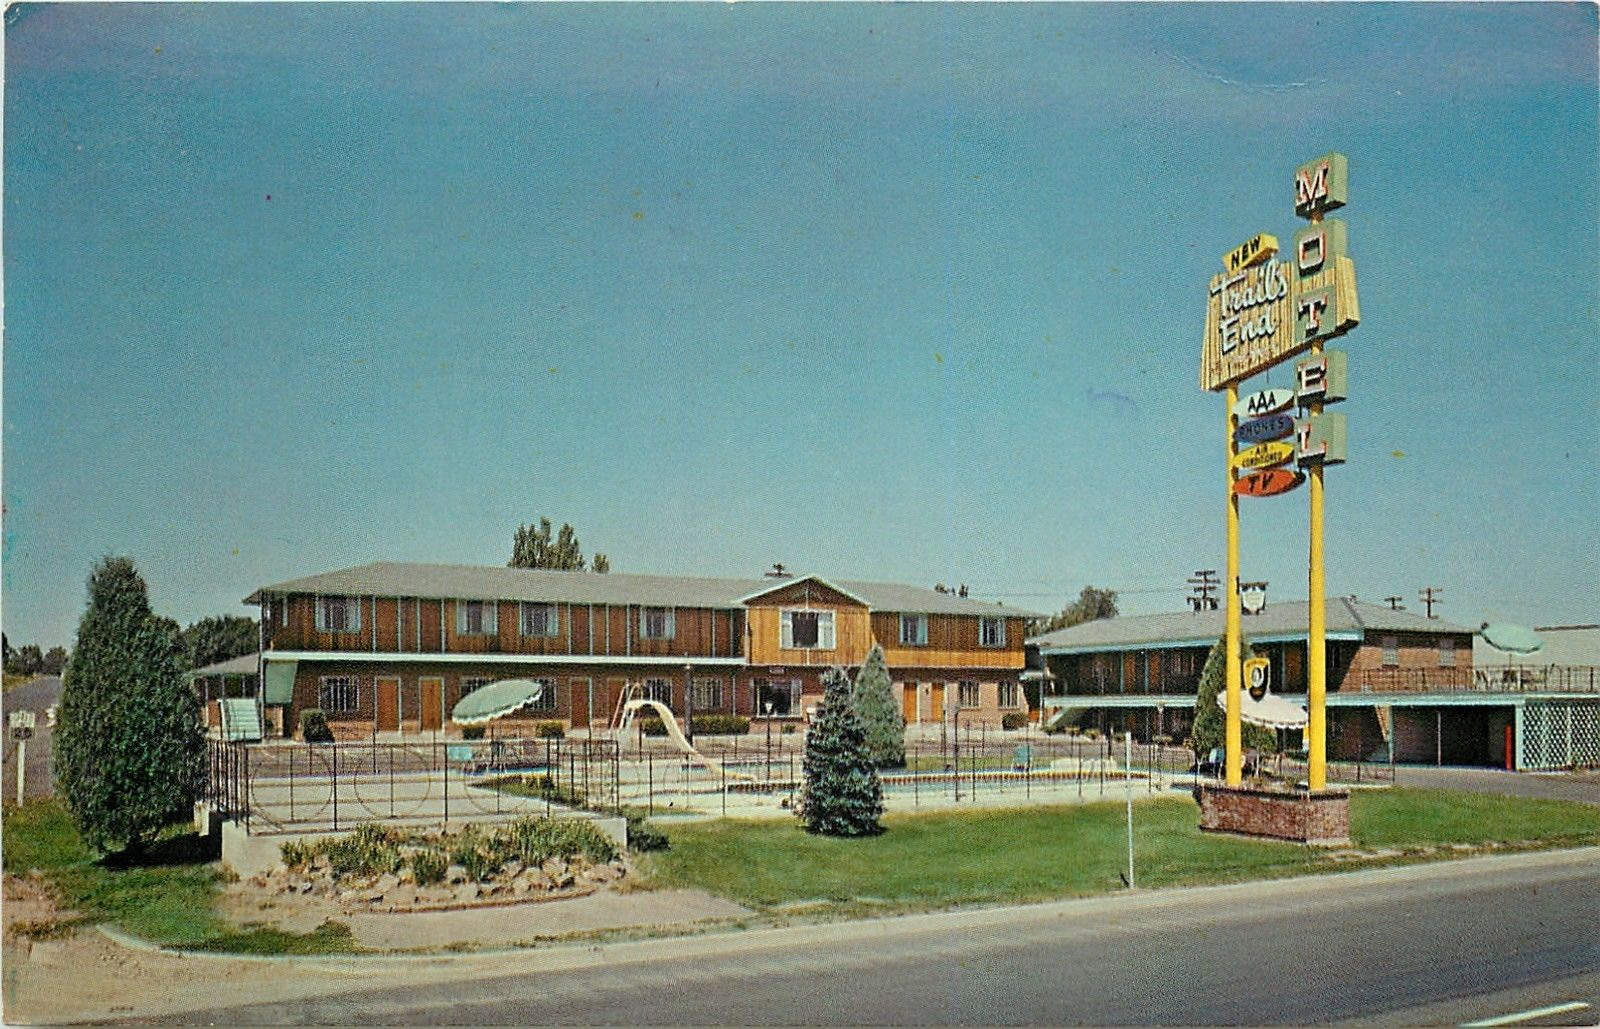 Trail S End Motel 9025 W Colfax Ave Lakewood Co 80215